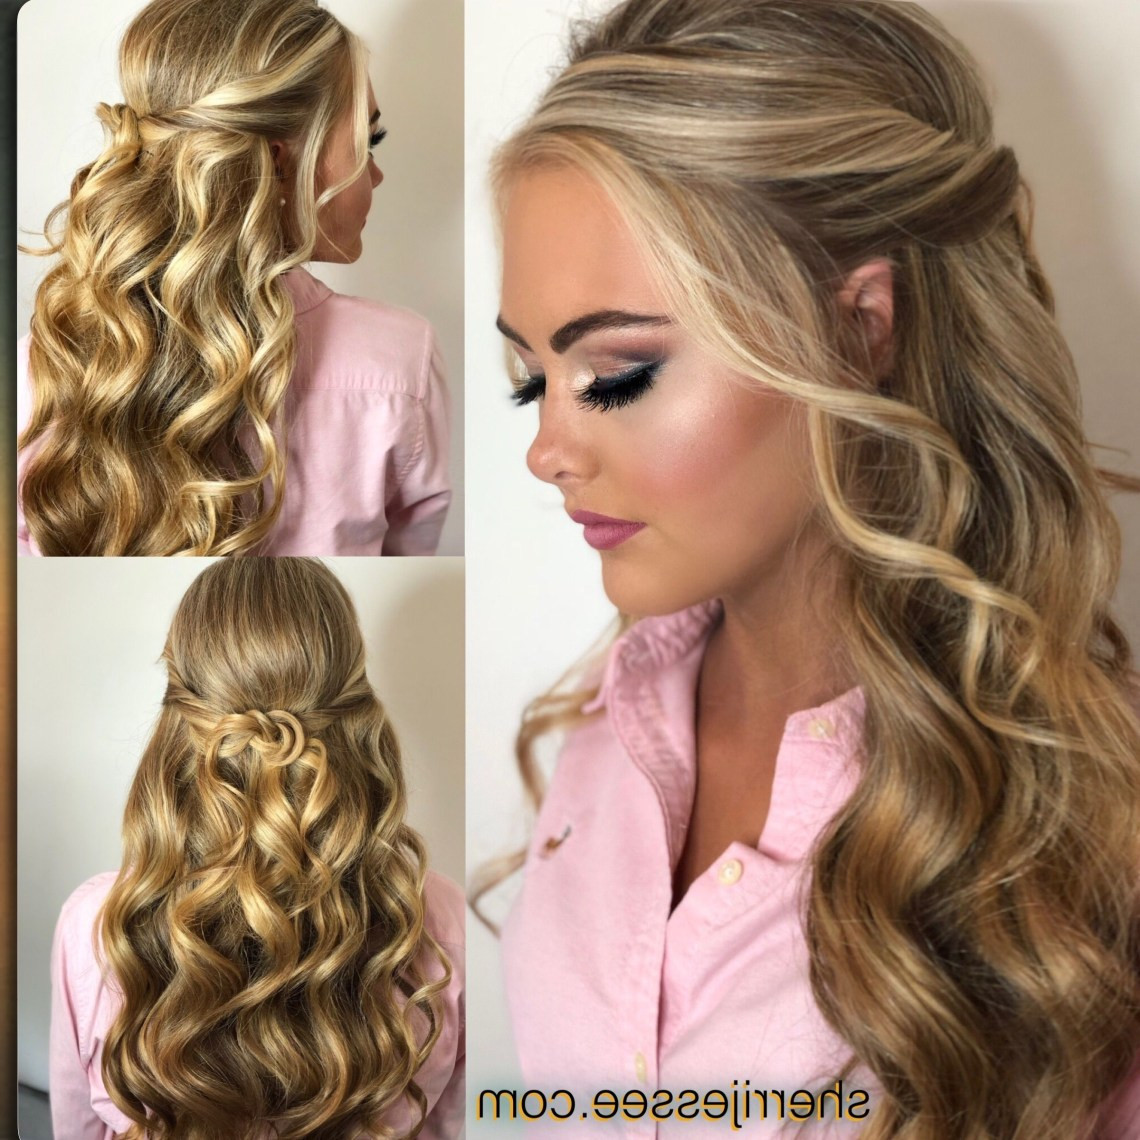 Beautiful Half Up Prom Or Pageant Hair | Prom Hair Down 20+ Stylish Beautiful Prom Hairstyles For Medium Length Hair